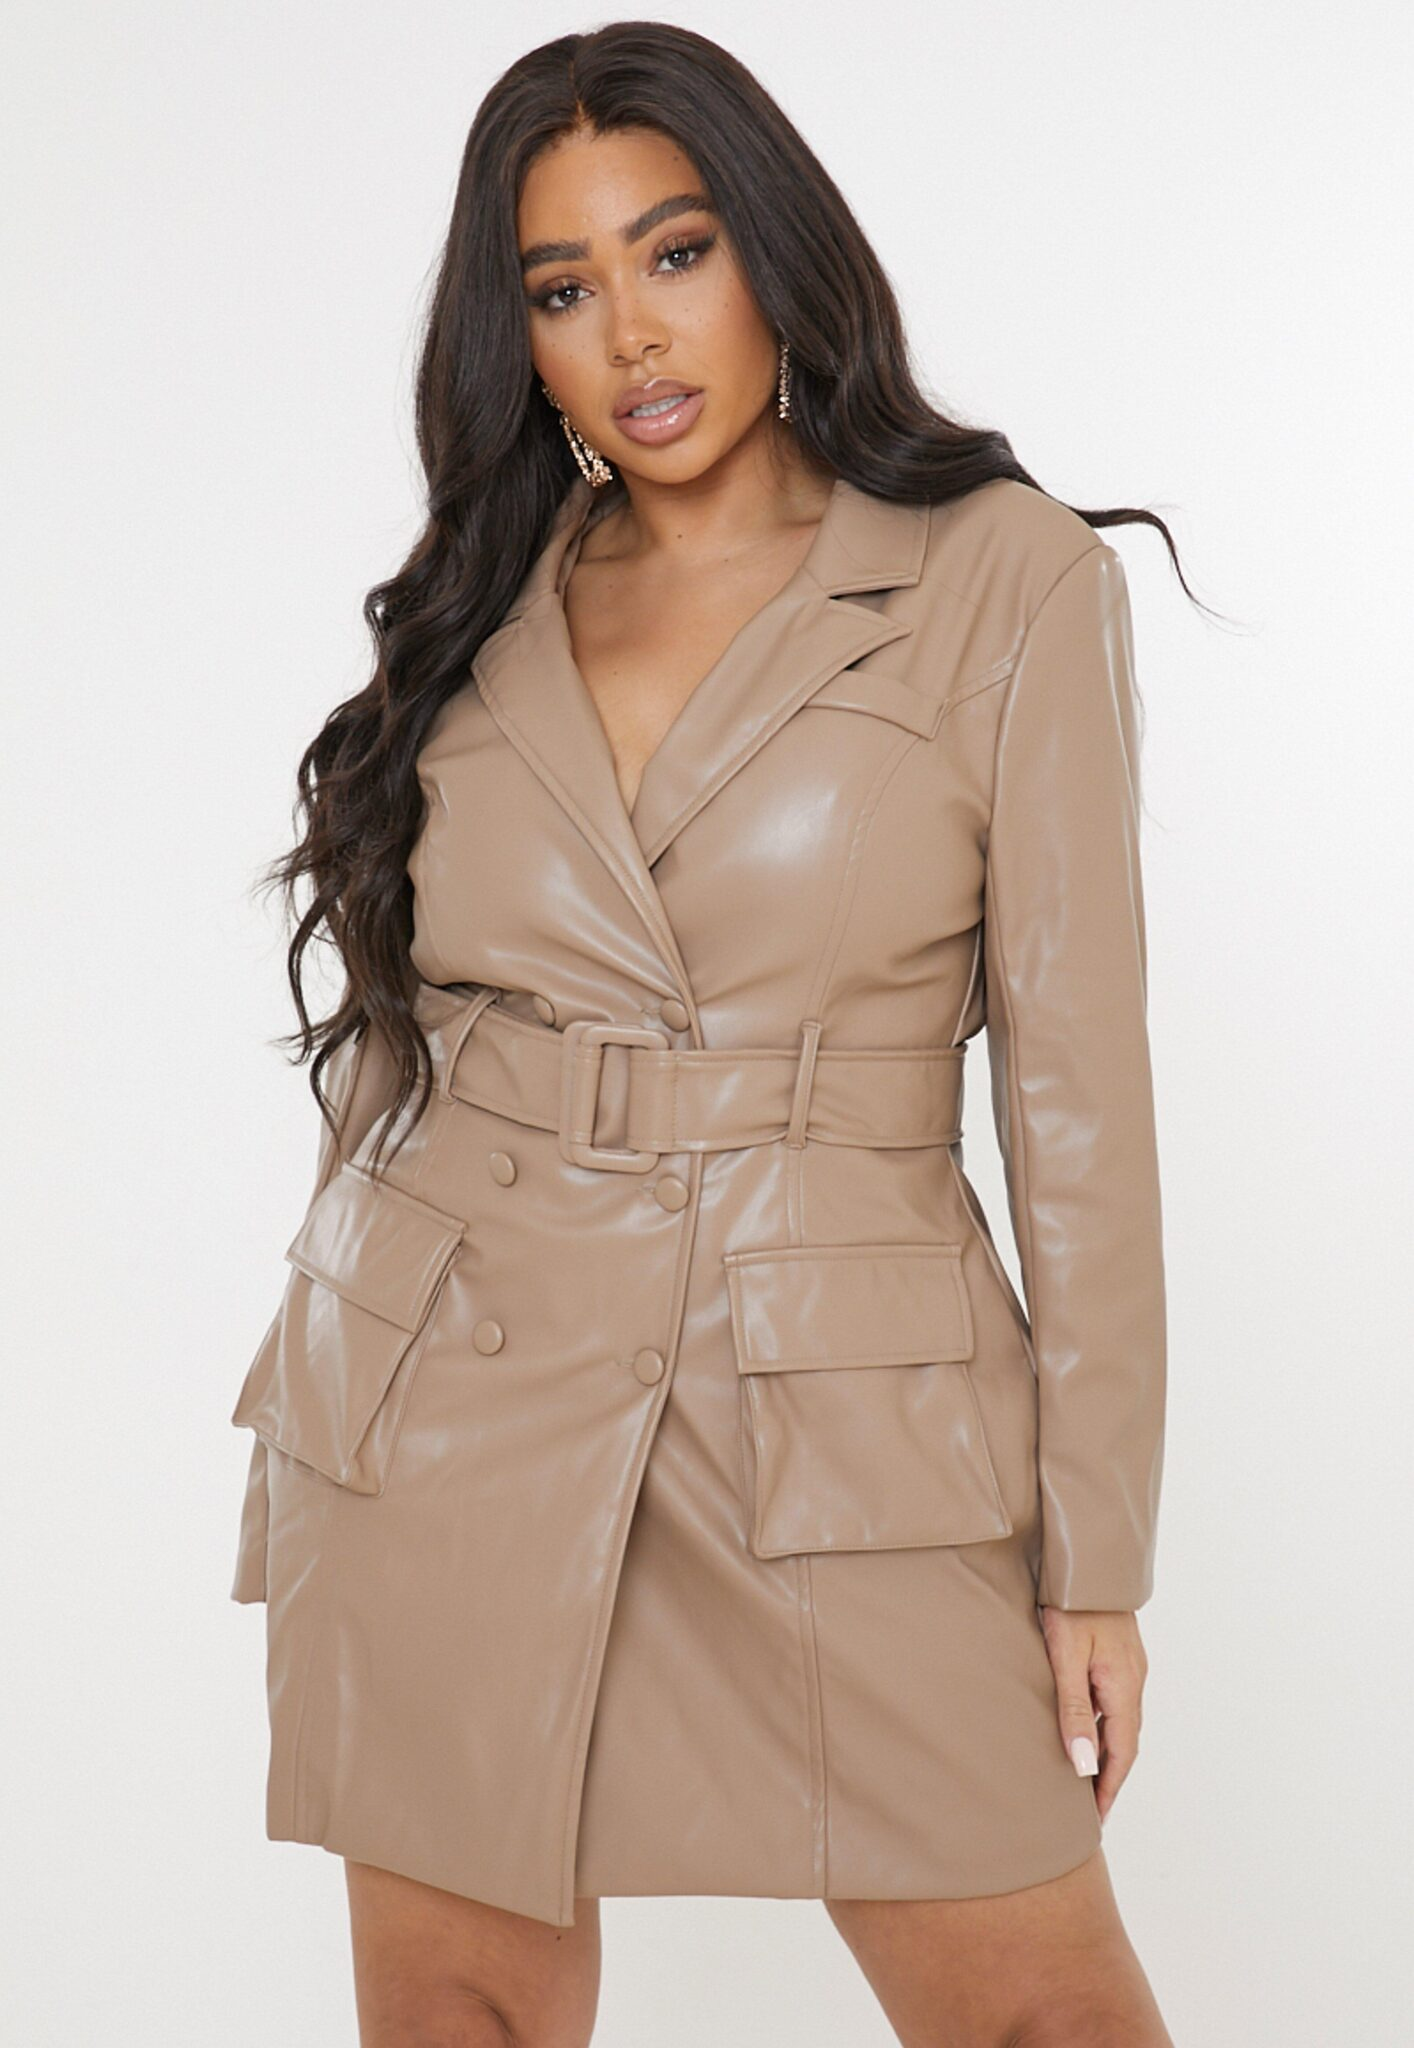 plus size mauve faux leather belted blazer dress $44.00